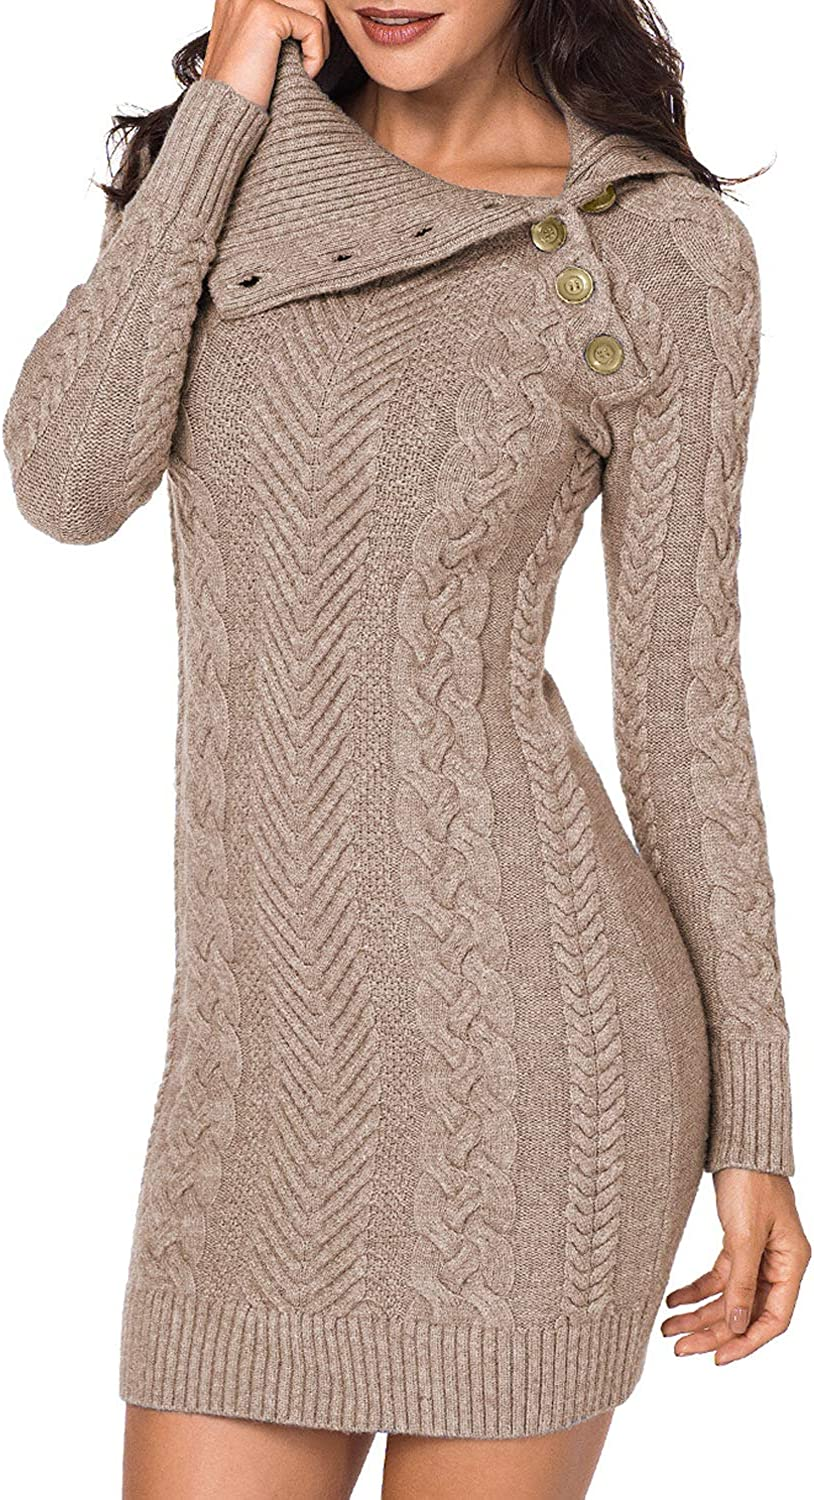 Sidefeel Women Asymmetric Buttoned Cable Sweat Fresno Mall Knit 55% OFF Bodycon Mini